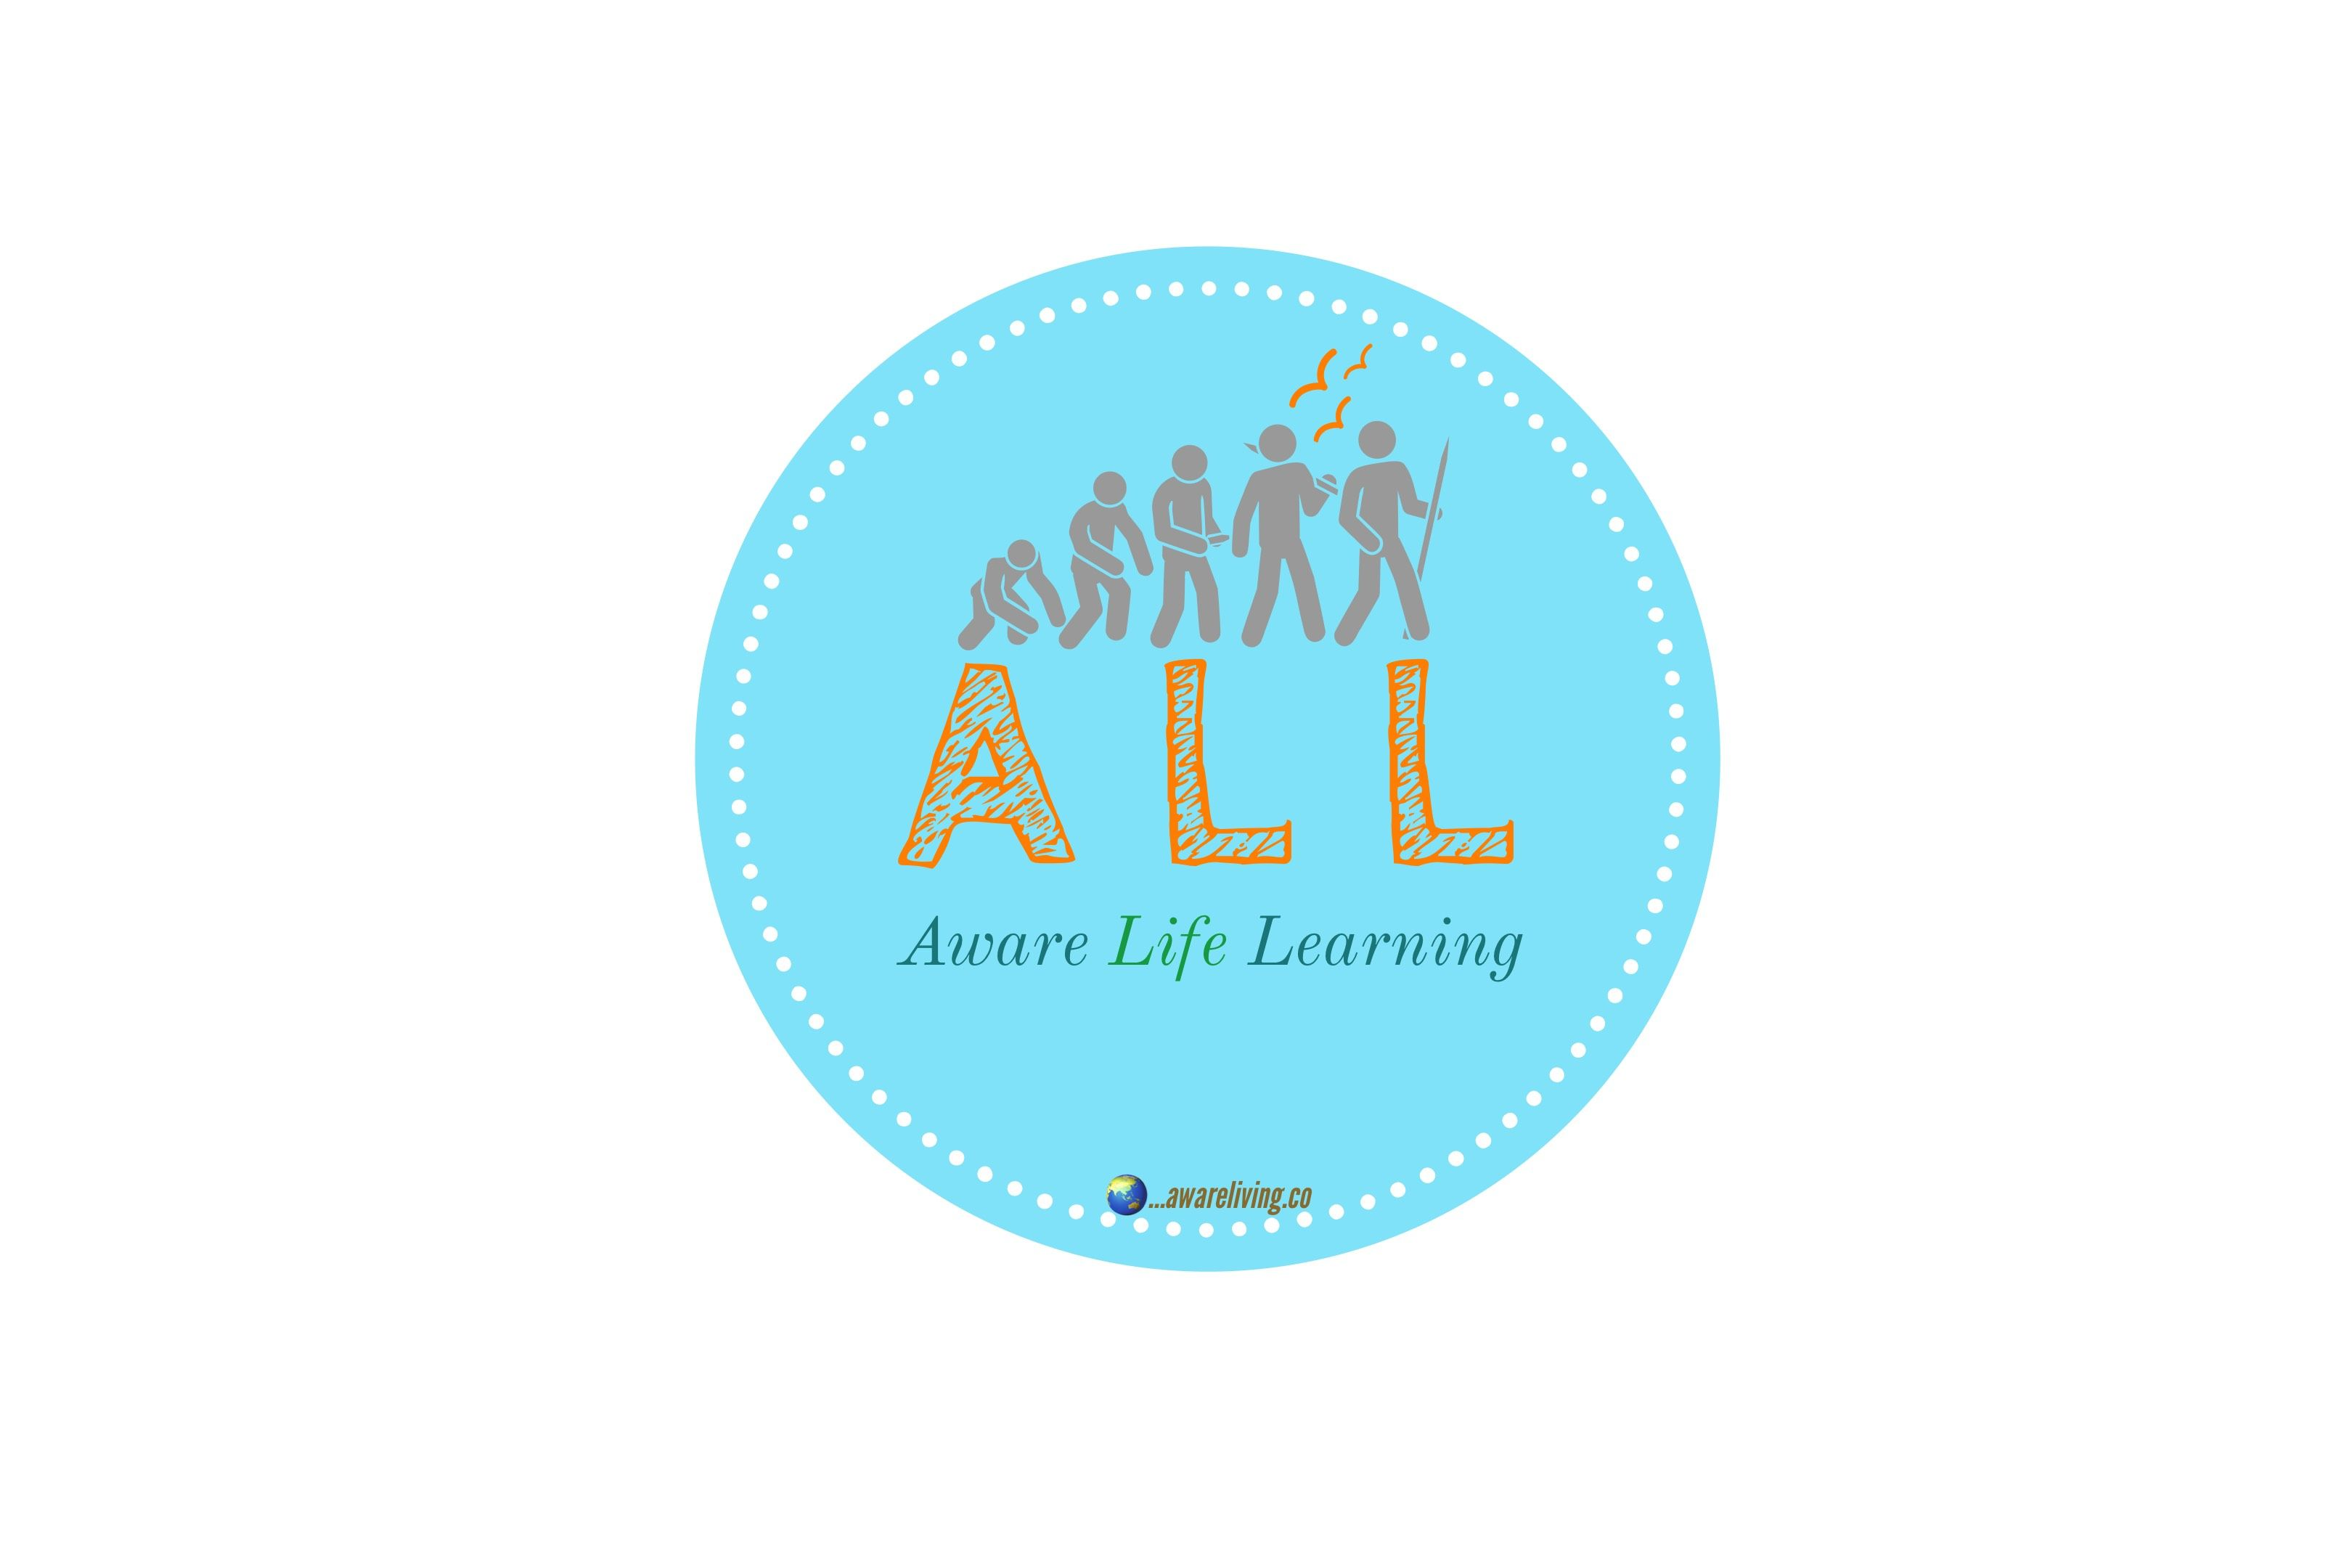 Aware Life Learning